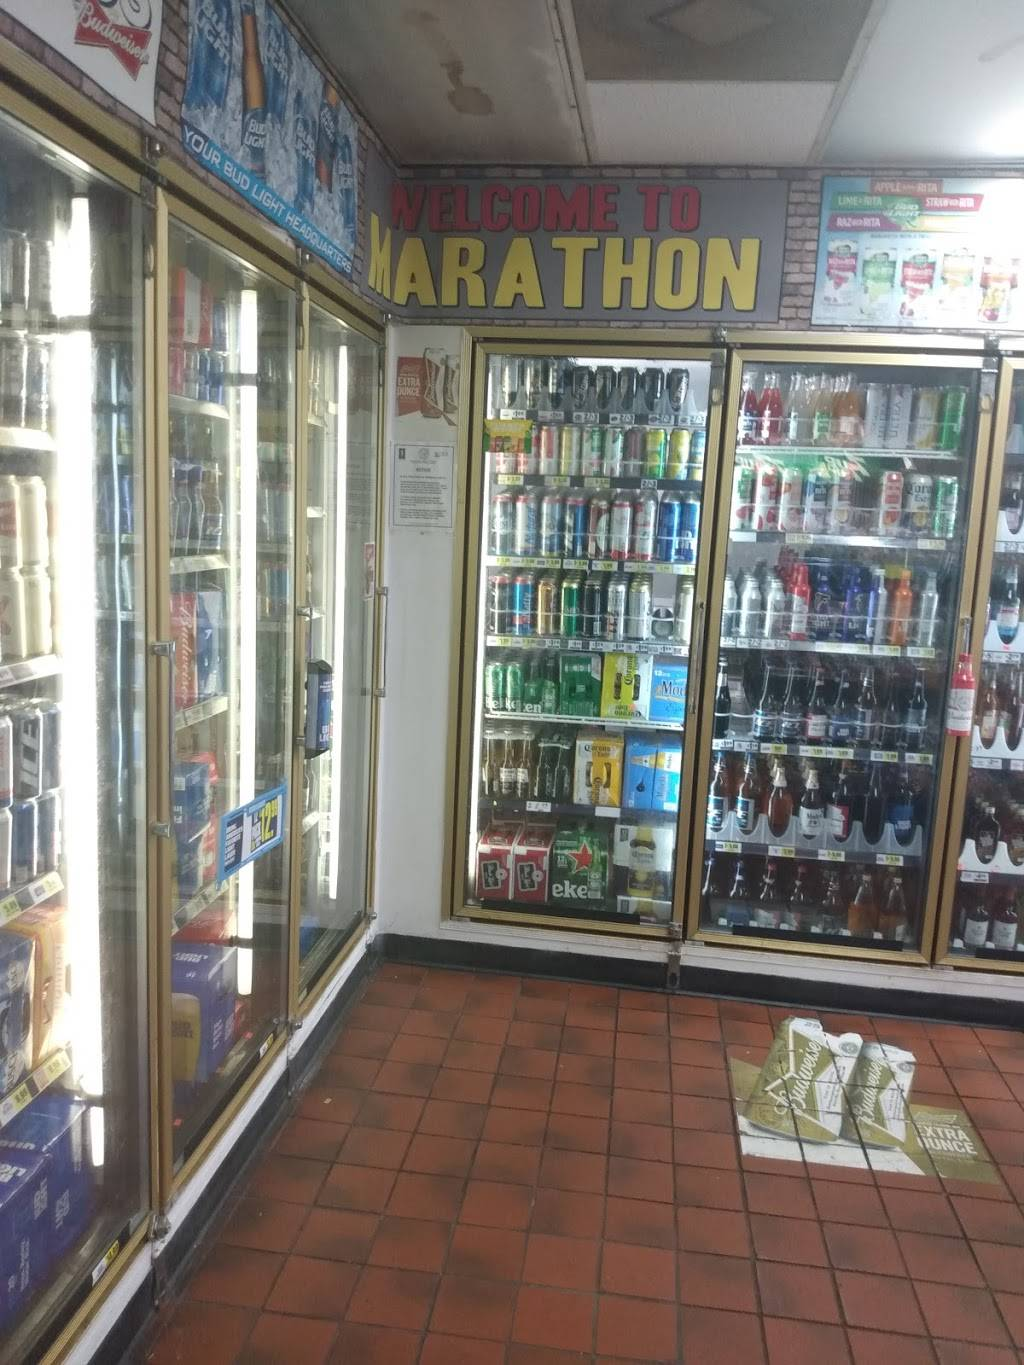 Marathon Gas - gas station  | Photo 1 of 10 | Address: 2588 Gresham Rd S E, Atlanta, GA 30316, USA | Phone: (404) 244-6016